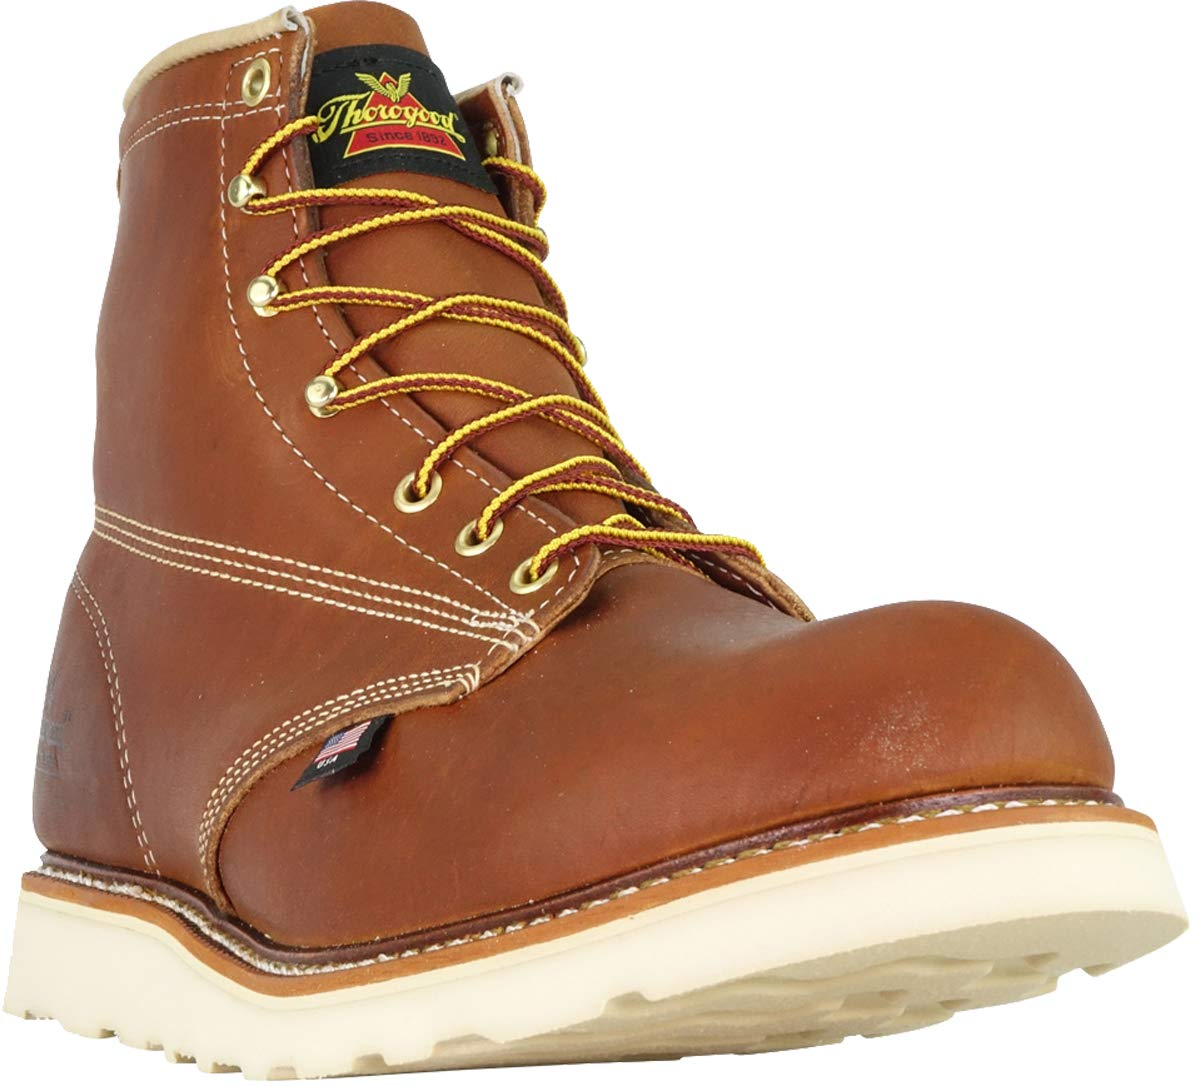 Thorogood 814-4355 Men's American Heritage 6'' Round Toe, MAXWear Wedge Non-Safety Toe Boot, Tobacco Oil-Tanned - 6.5 2E US by Thorogood (Image #3)